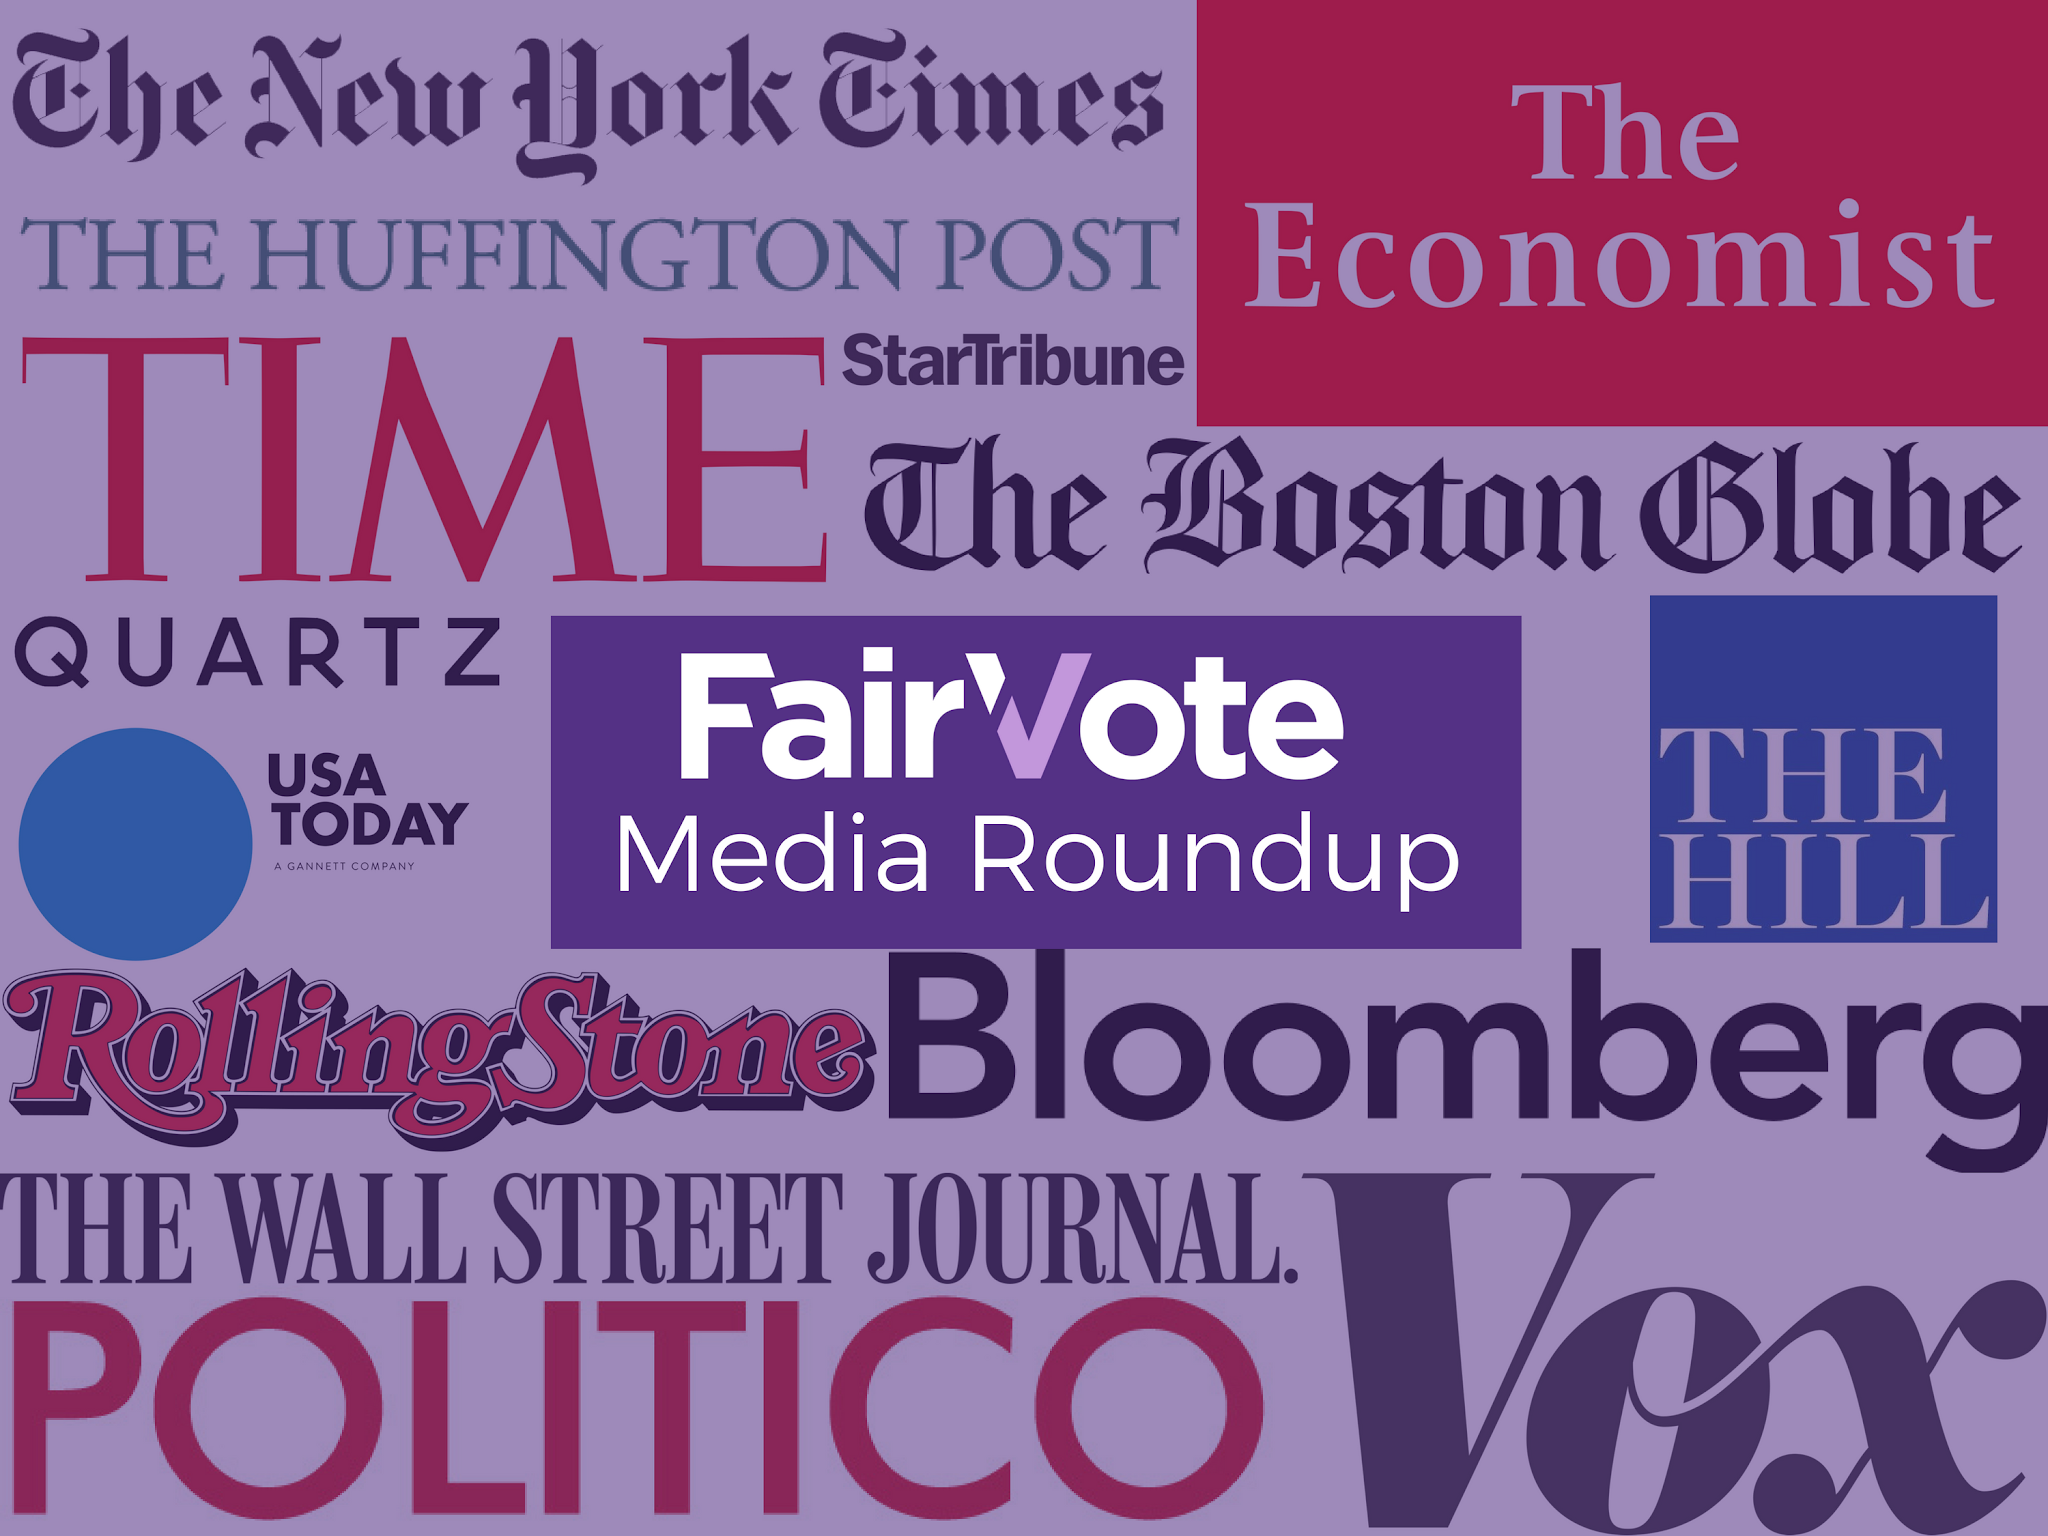 Big news for ranked choice voting in this week's media roundup